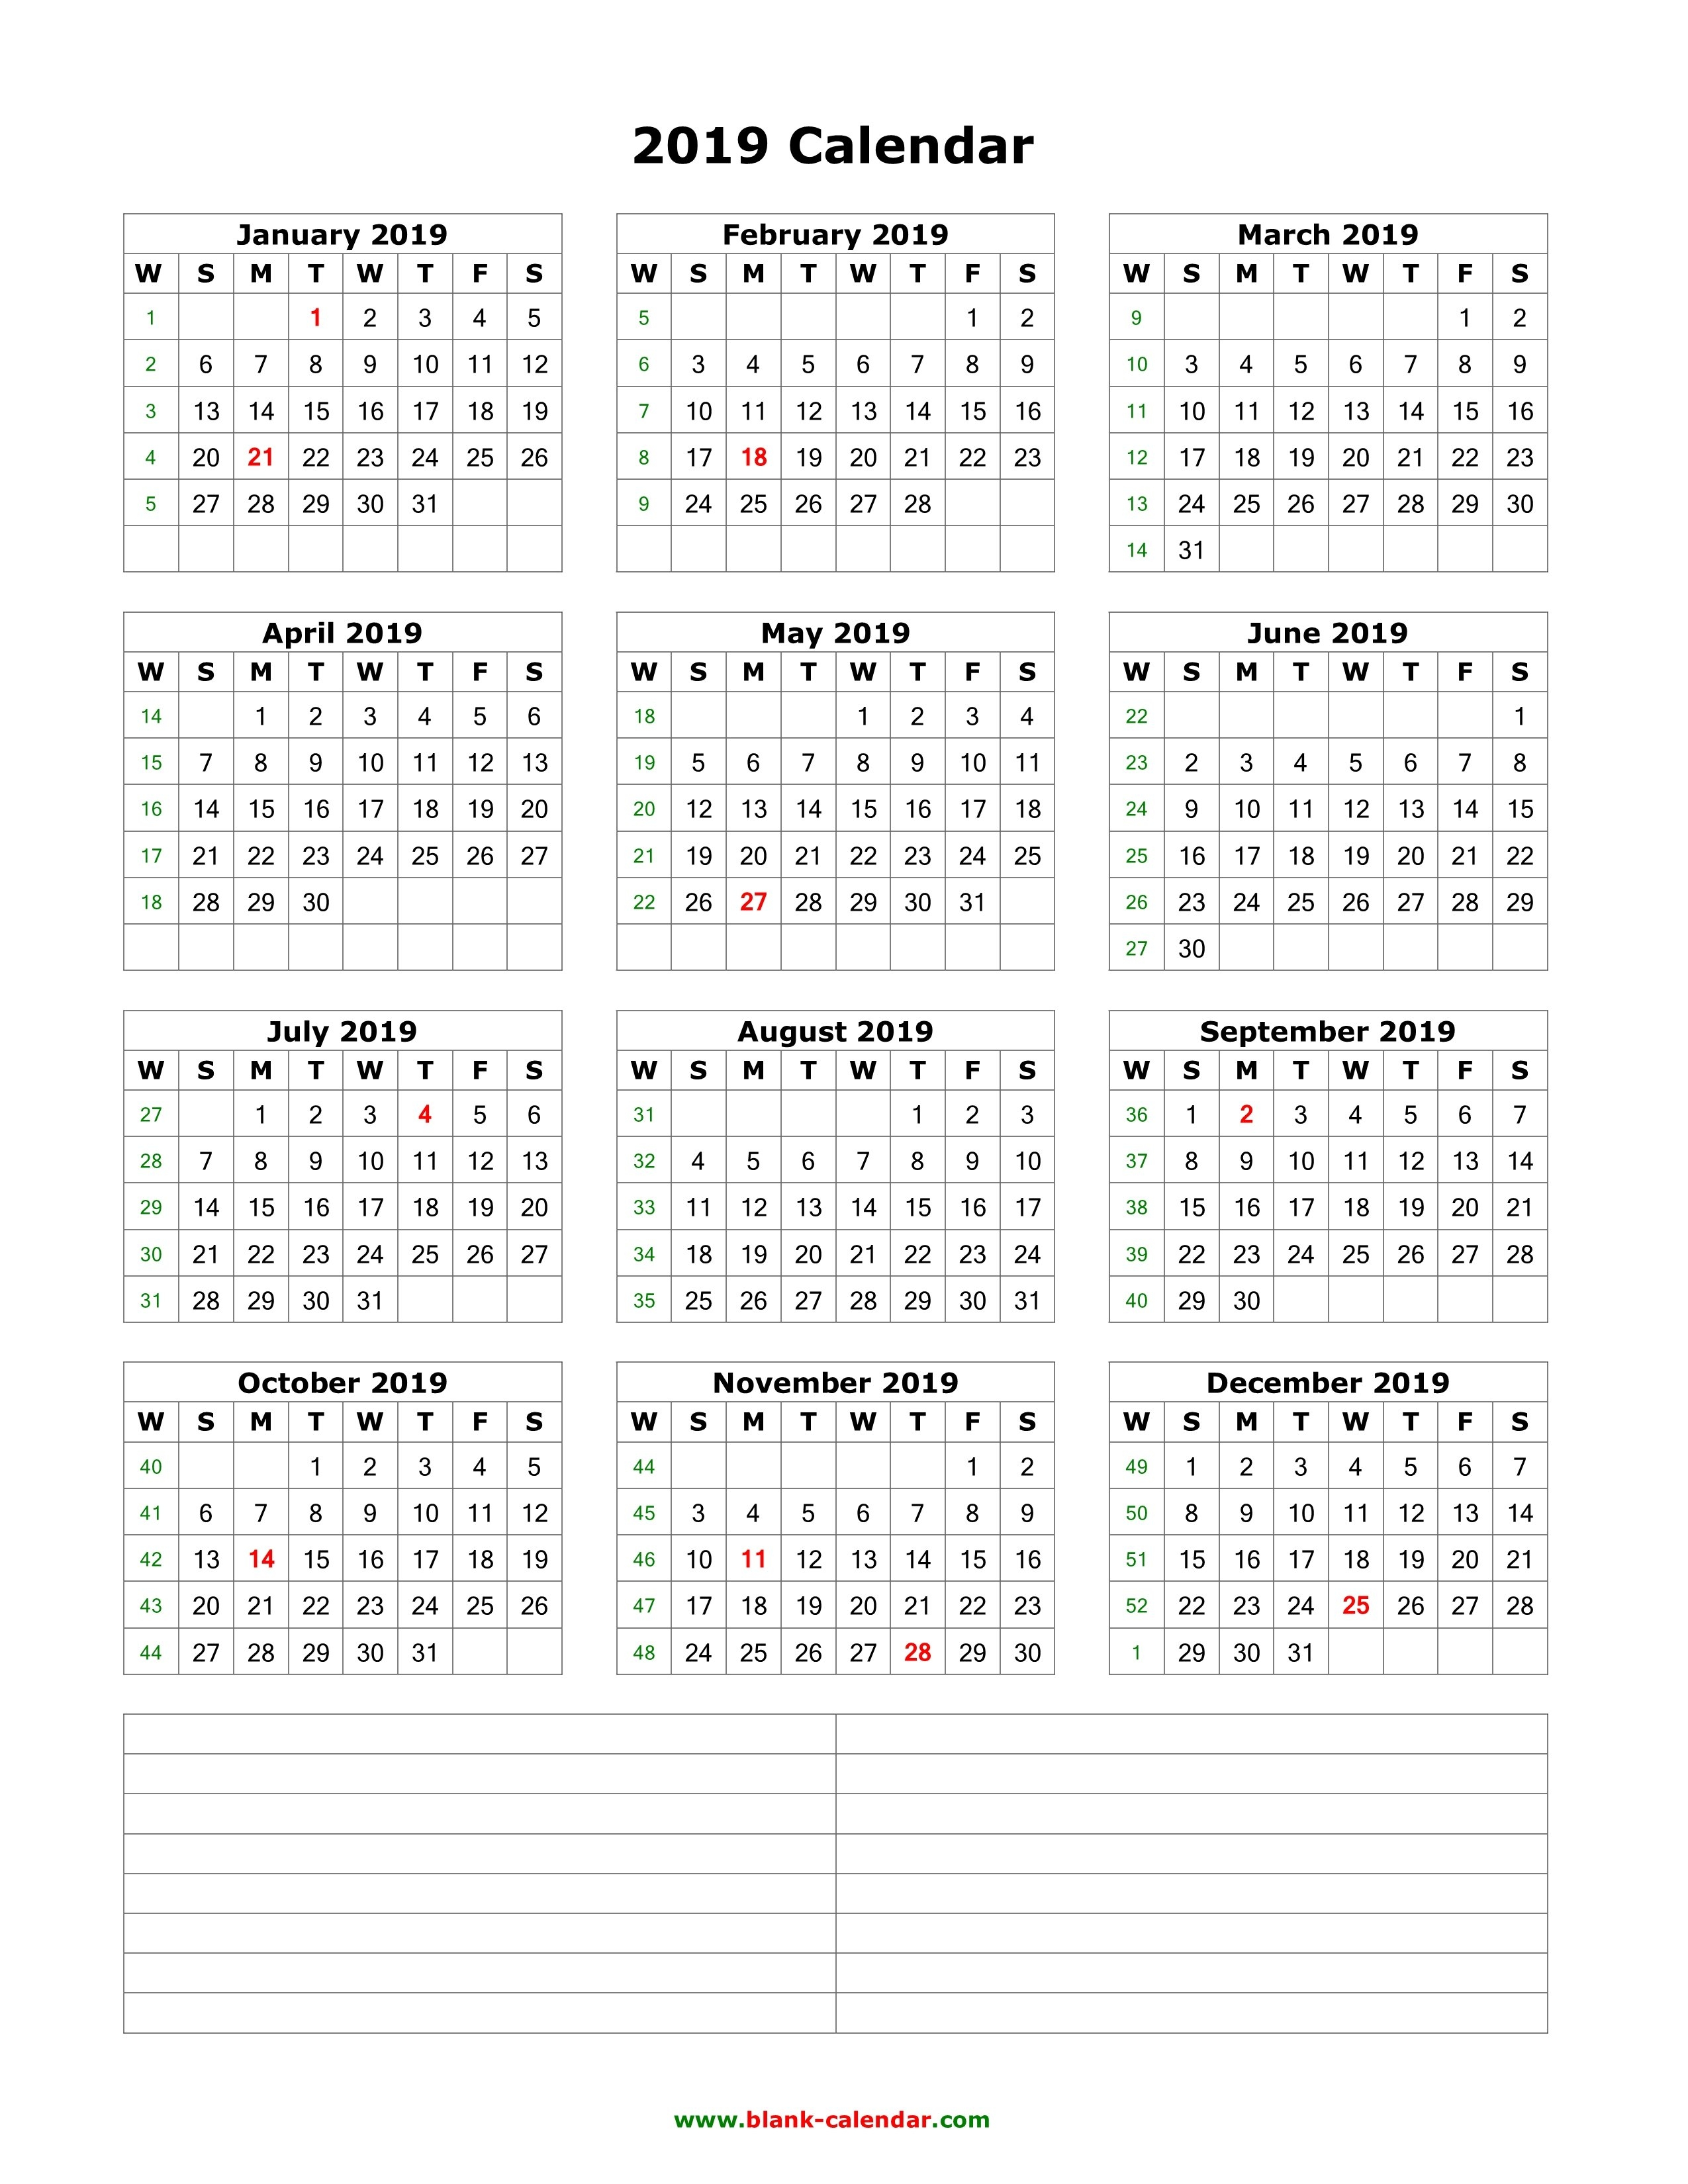 Download Blank Calendar 2019 With Space For Notes (12 Months On One Calendar 2019 1 Page